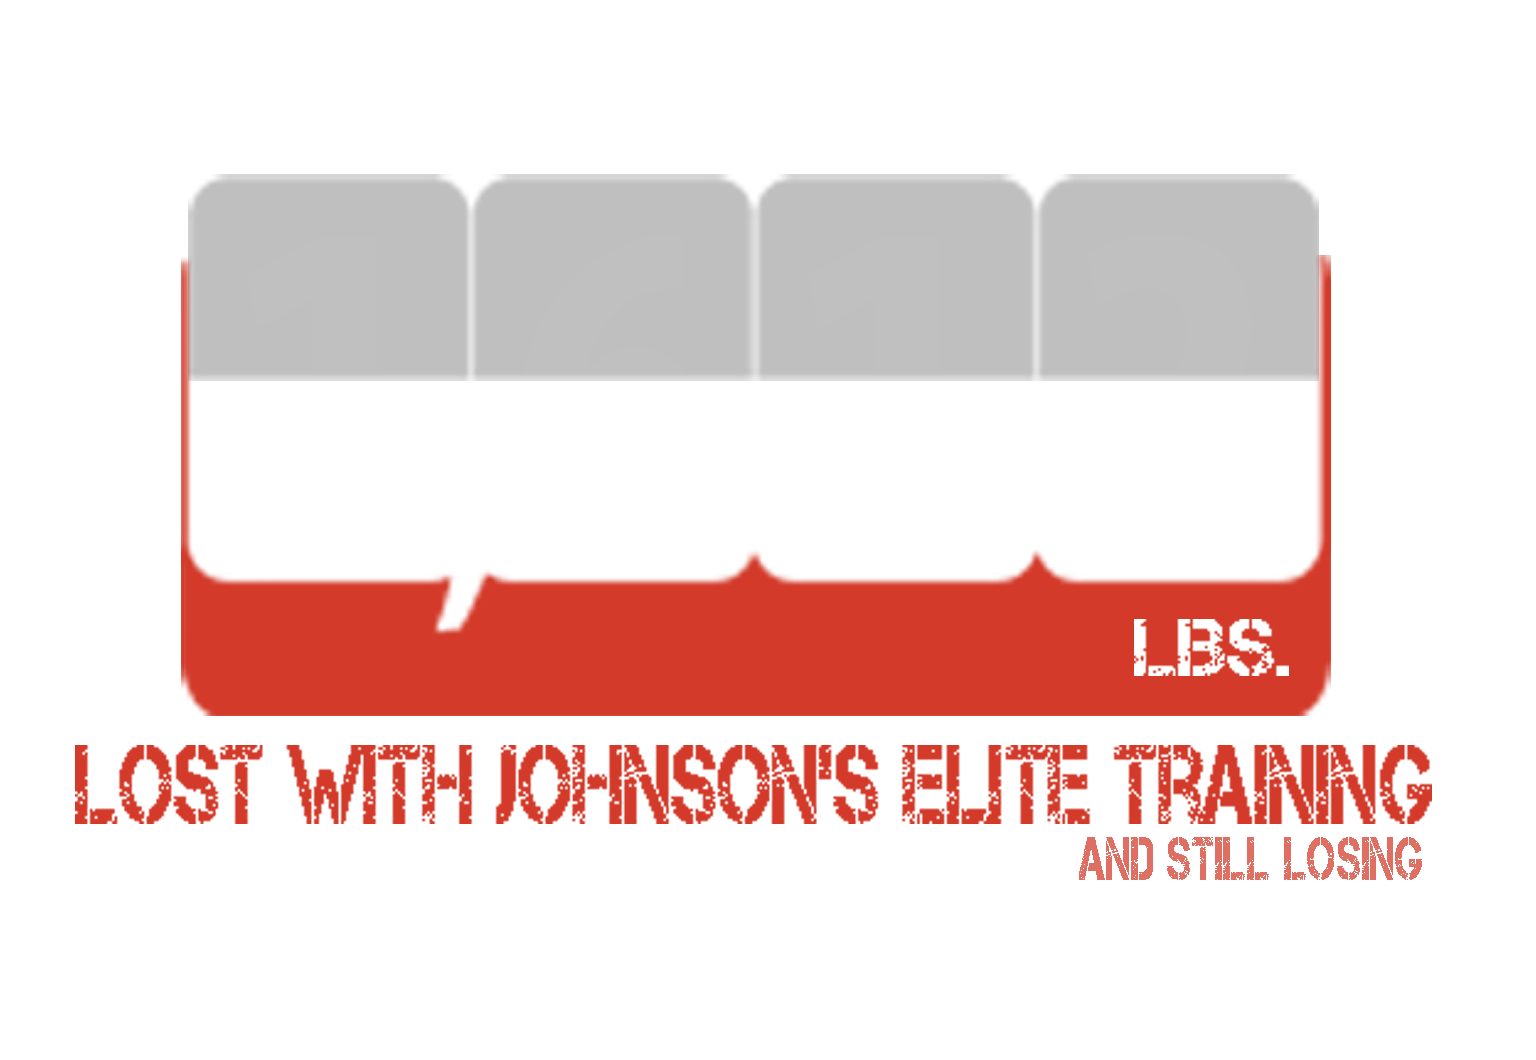 BTC, Lose Fat, Build Muscle, Feel Great, Johnson's Elite Training, JETSTRONG Boot Camp, Weight Lost, weight loss, pounds lost